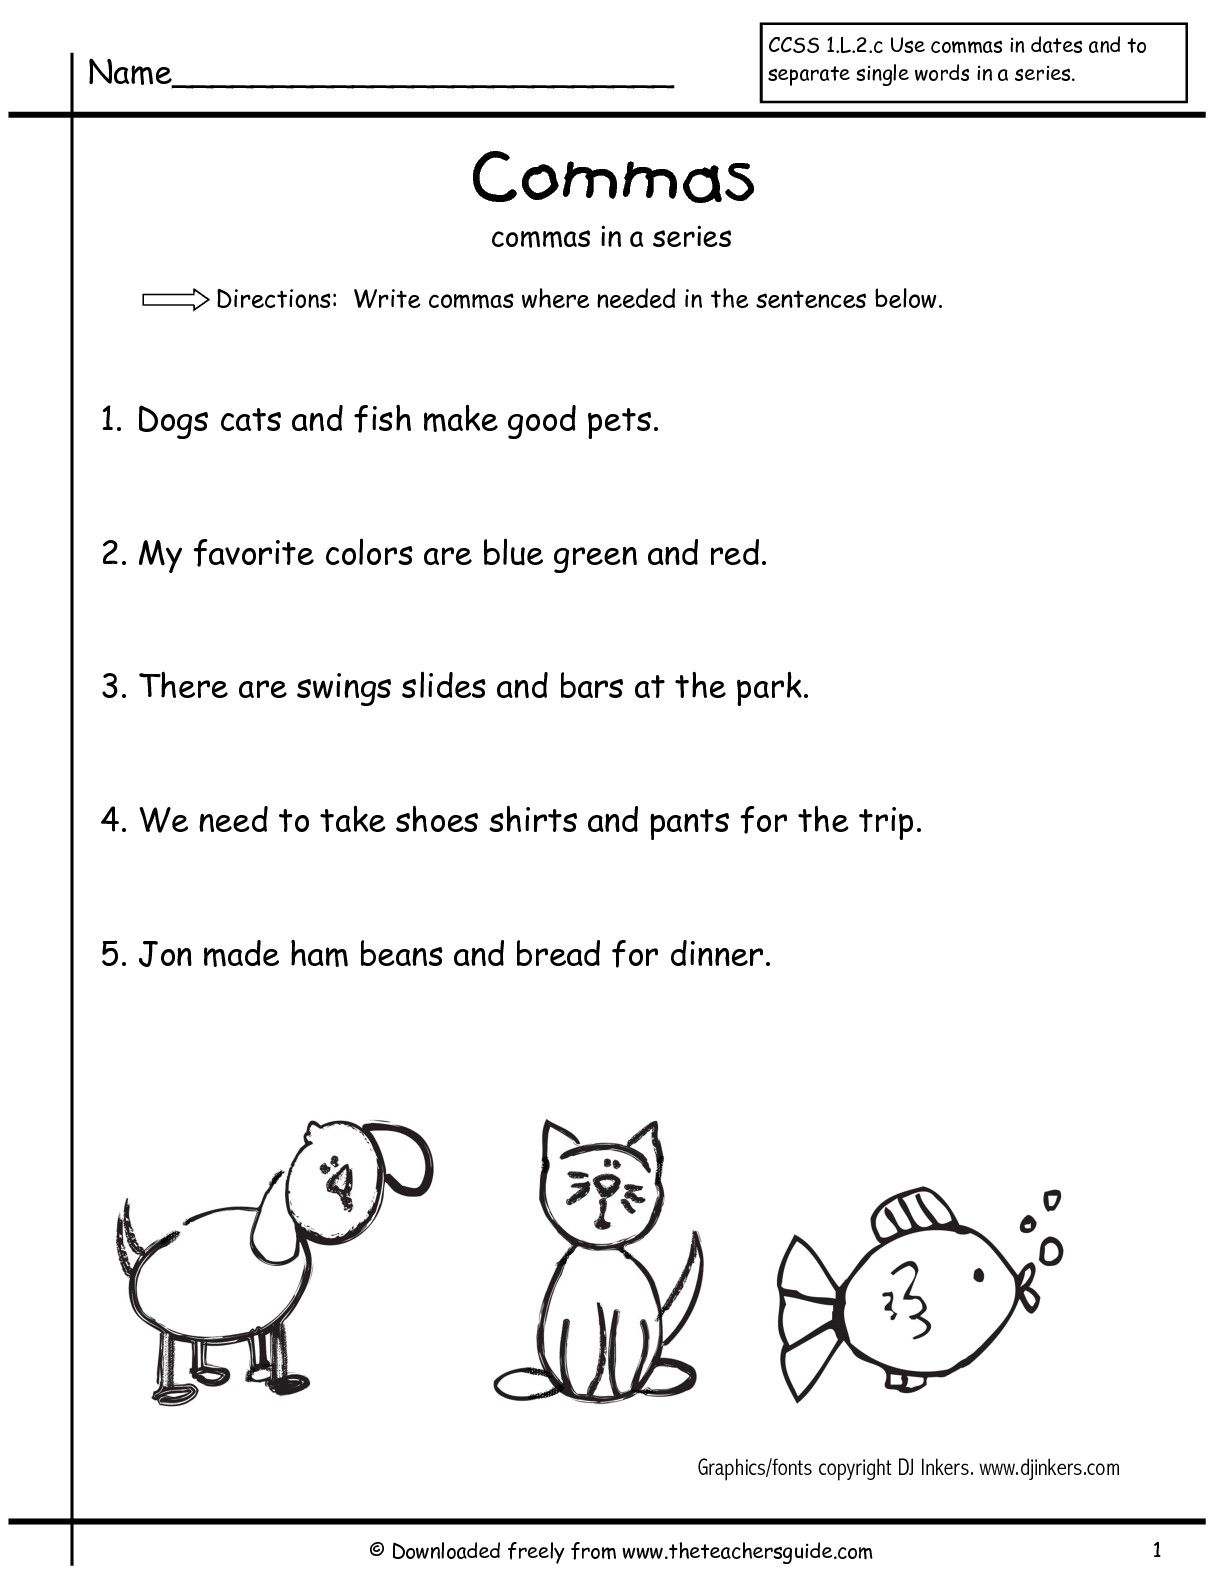 Worksheets Comma Worksheet grammar worksheets commas in a series first grade free comma worksheets